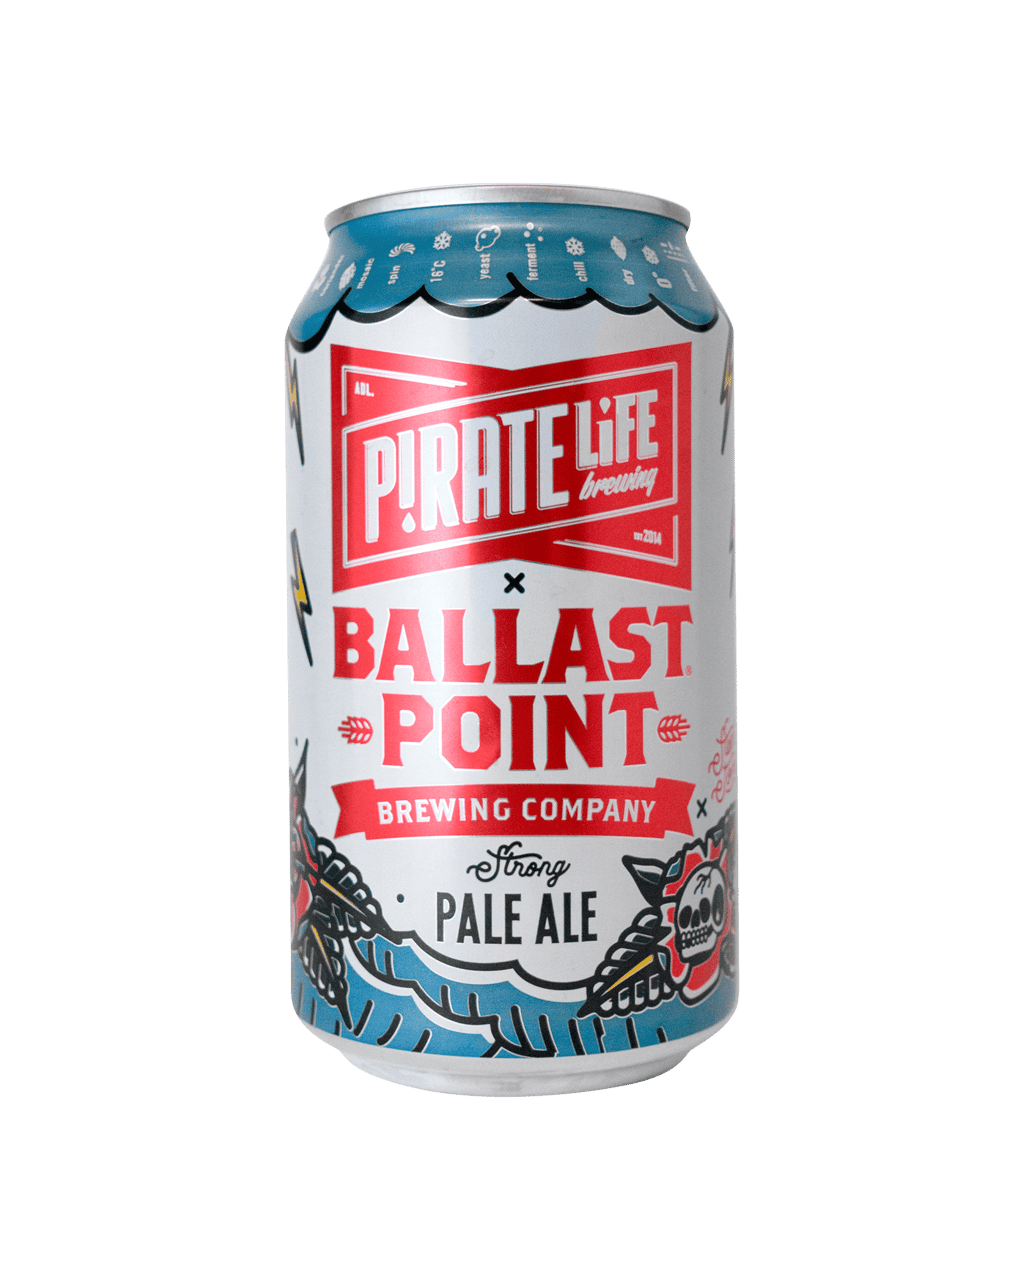 e2e50c77b8a Pirate Life Brewing X Ballast Point Strong Pale Ale Cans 355mL